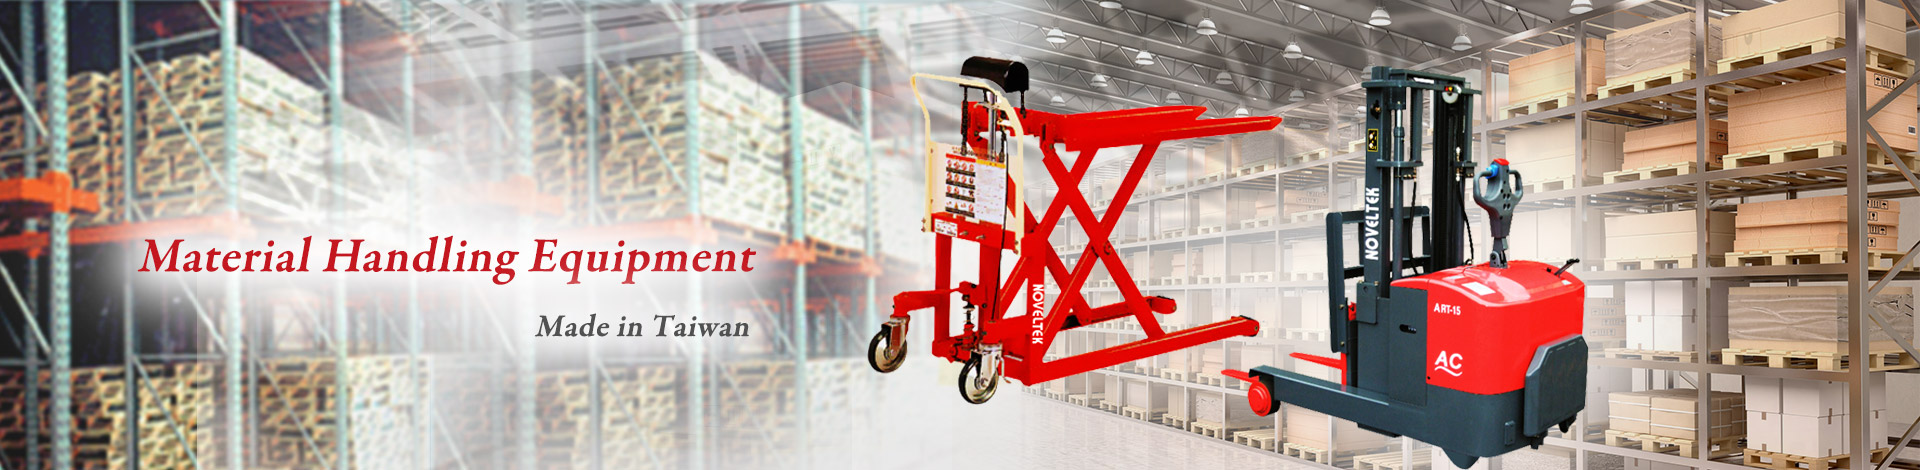 Noveltek Industrial Manufacturing Inc. is a leading manufacturer specialized in Walkie Stacker, Powered Stacker, Powered Pallet Truck.